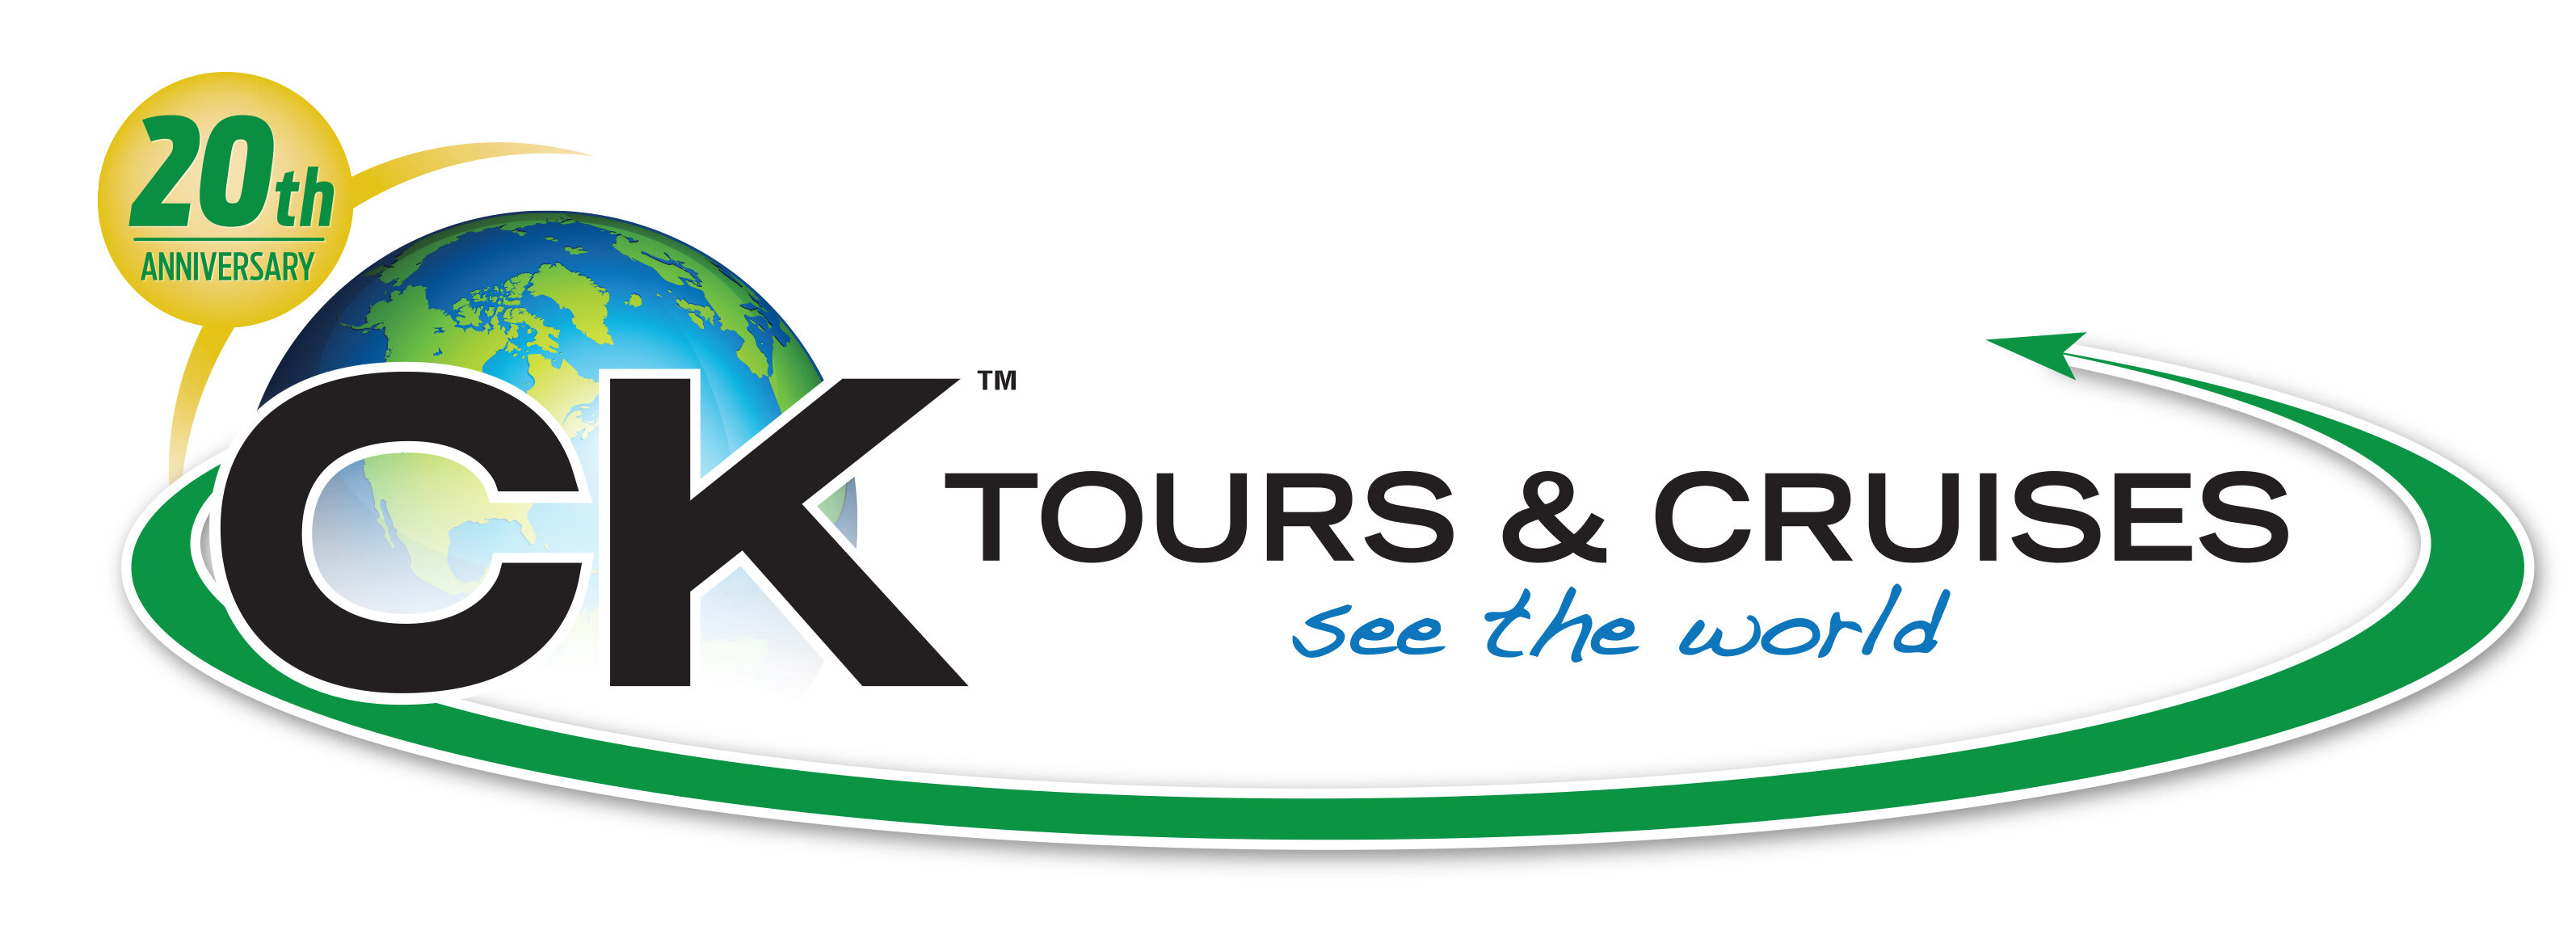 CK Tours & Cruises Weddings